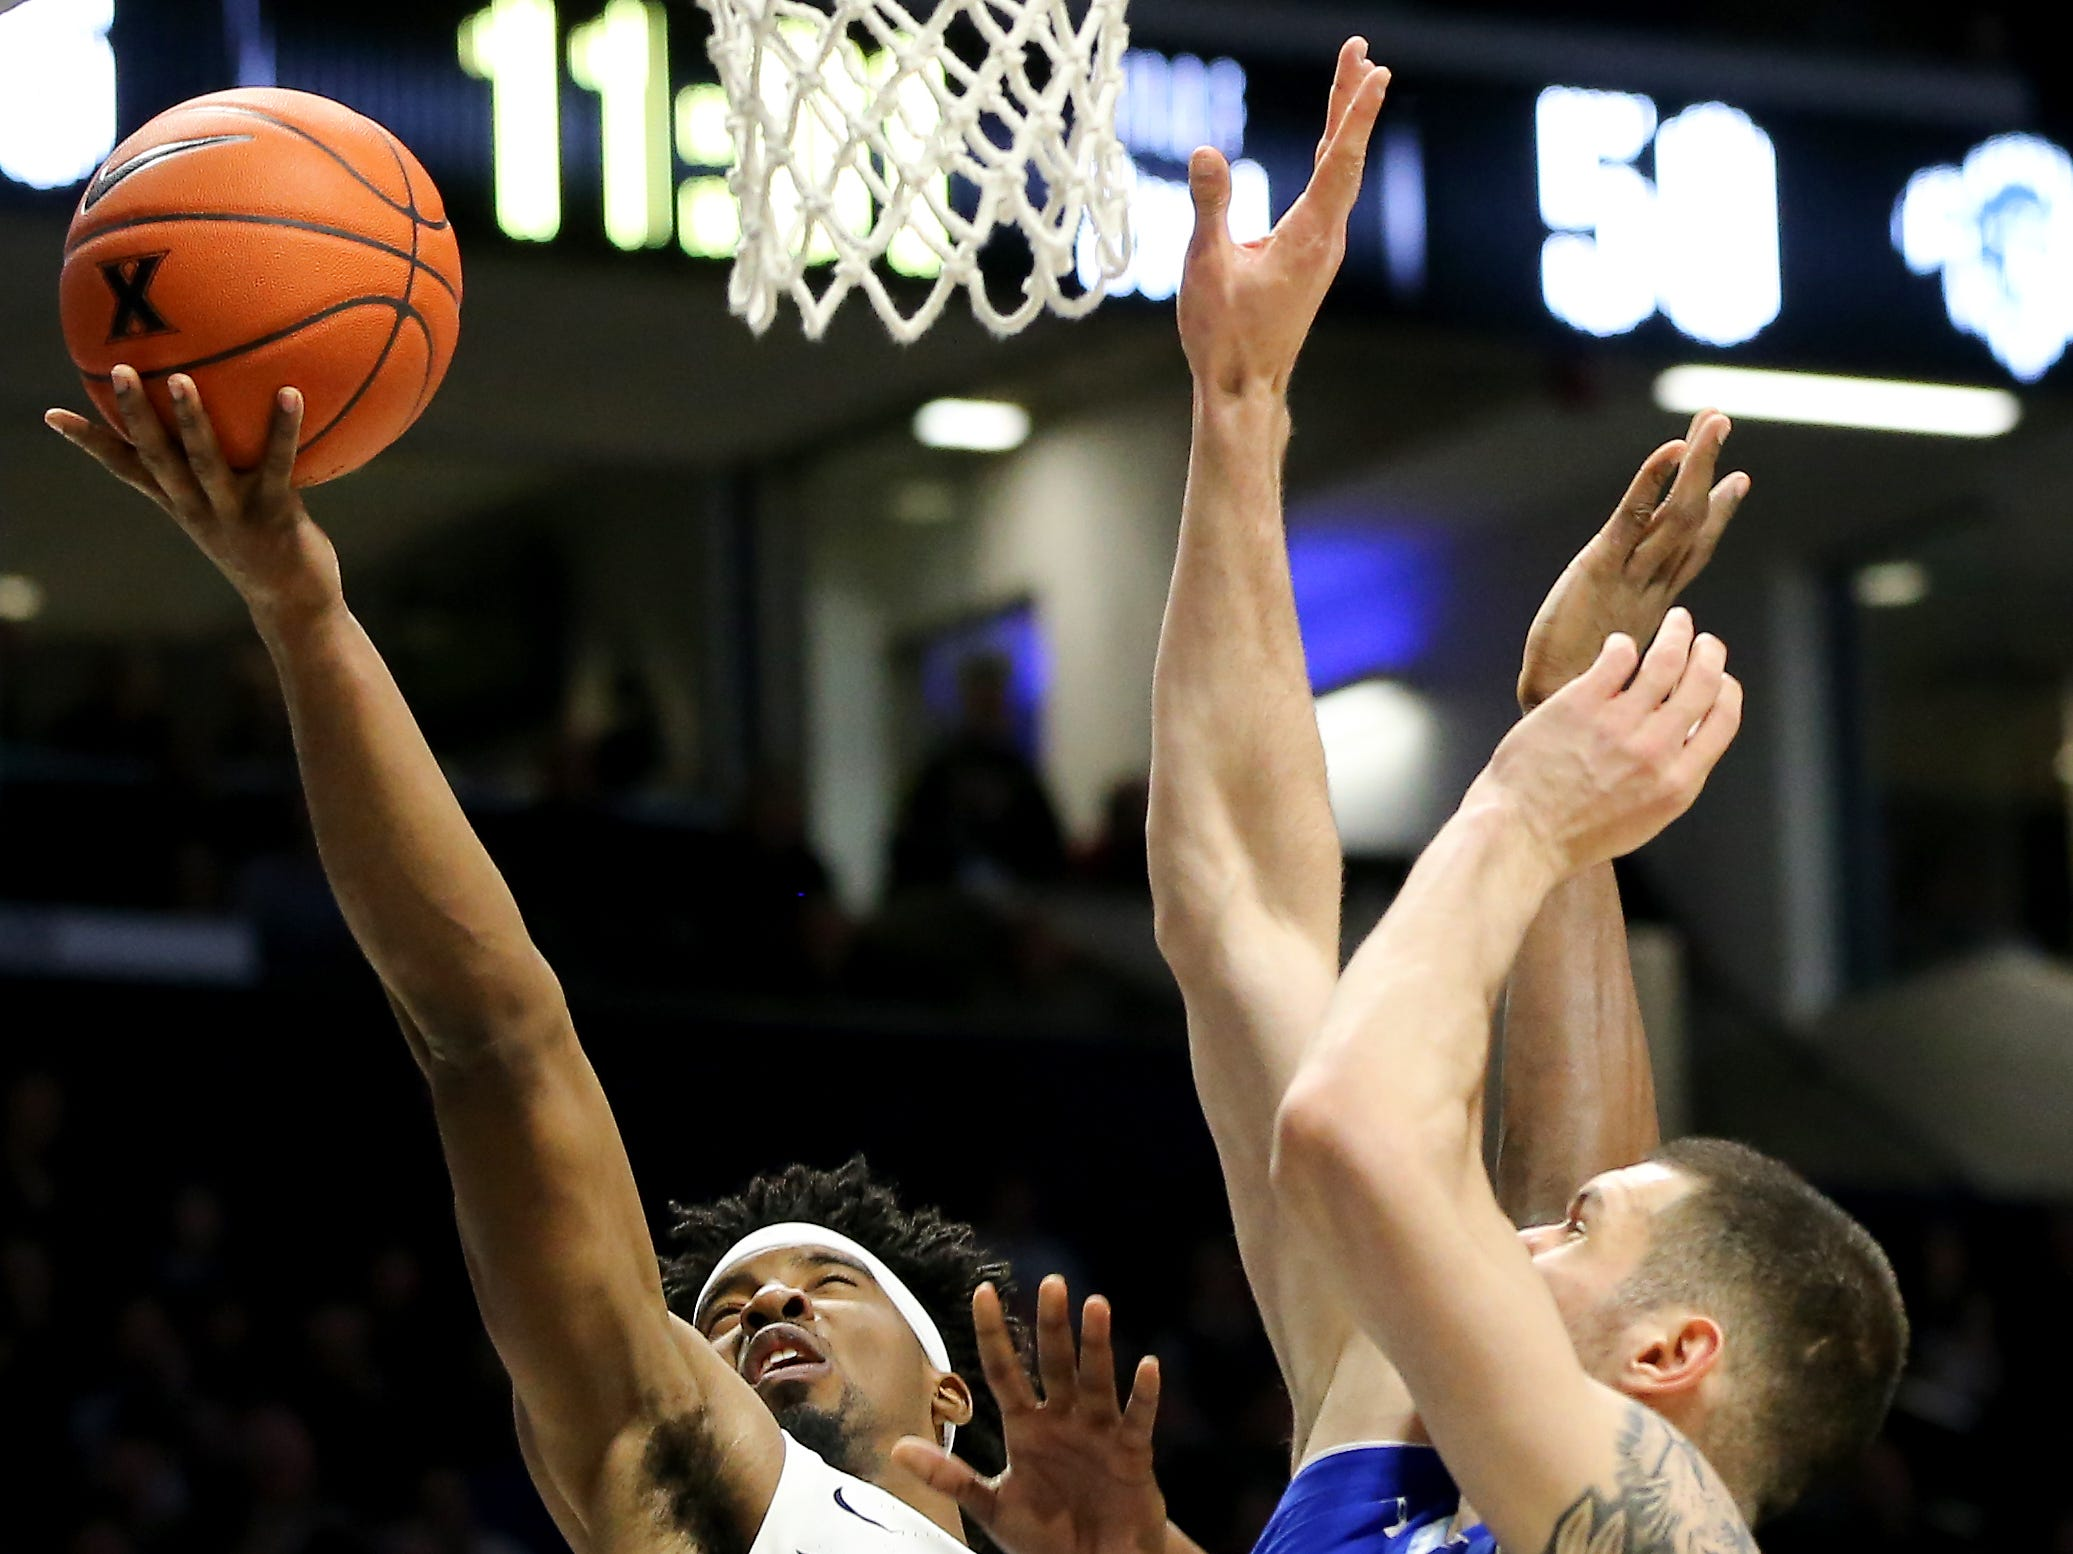 Xavier Musketeers guard Quentin Goodin (3) goes up for a basket in the second half of an NCAA college basketball game against the Seton Hall Pirates, Wednesday, Jan. 2, 2019, at the Cintas Center in Cincinnati. Seton Hall won 80-70.